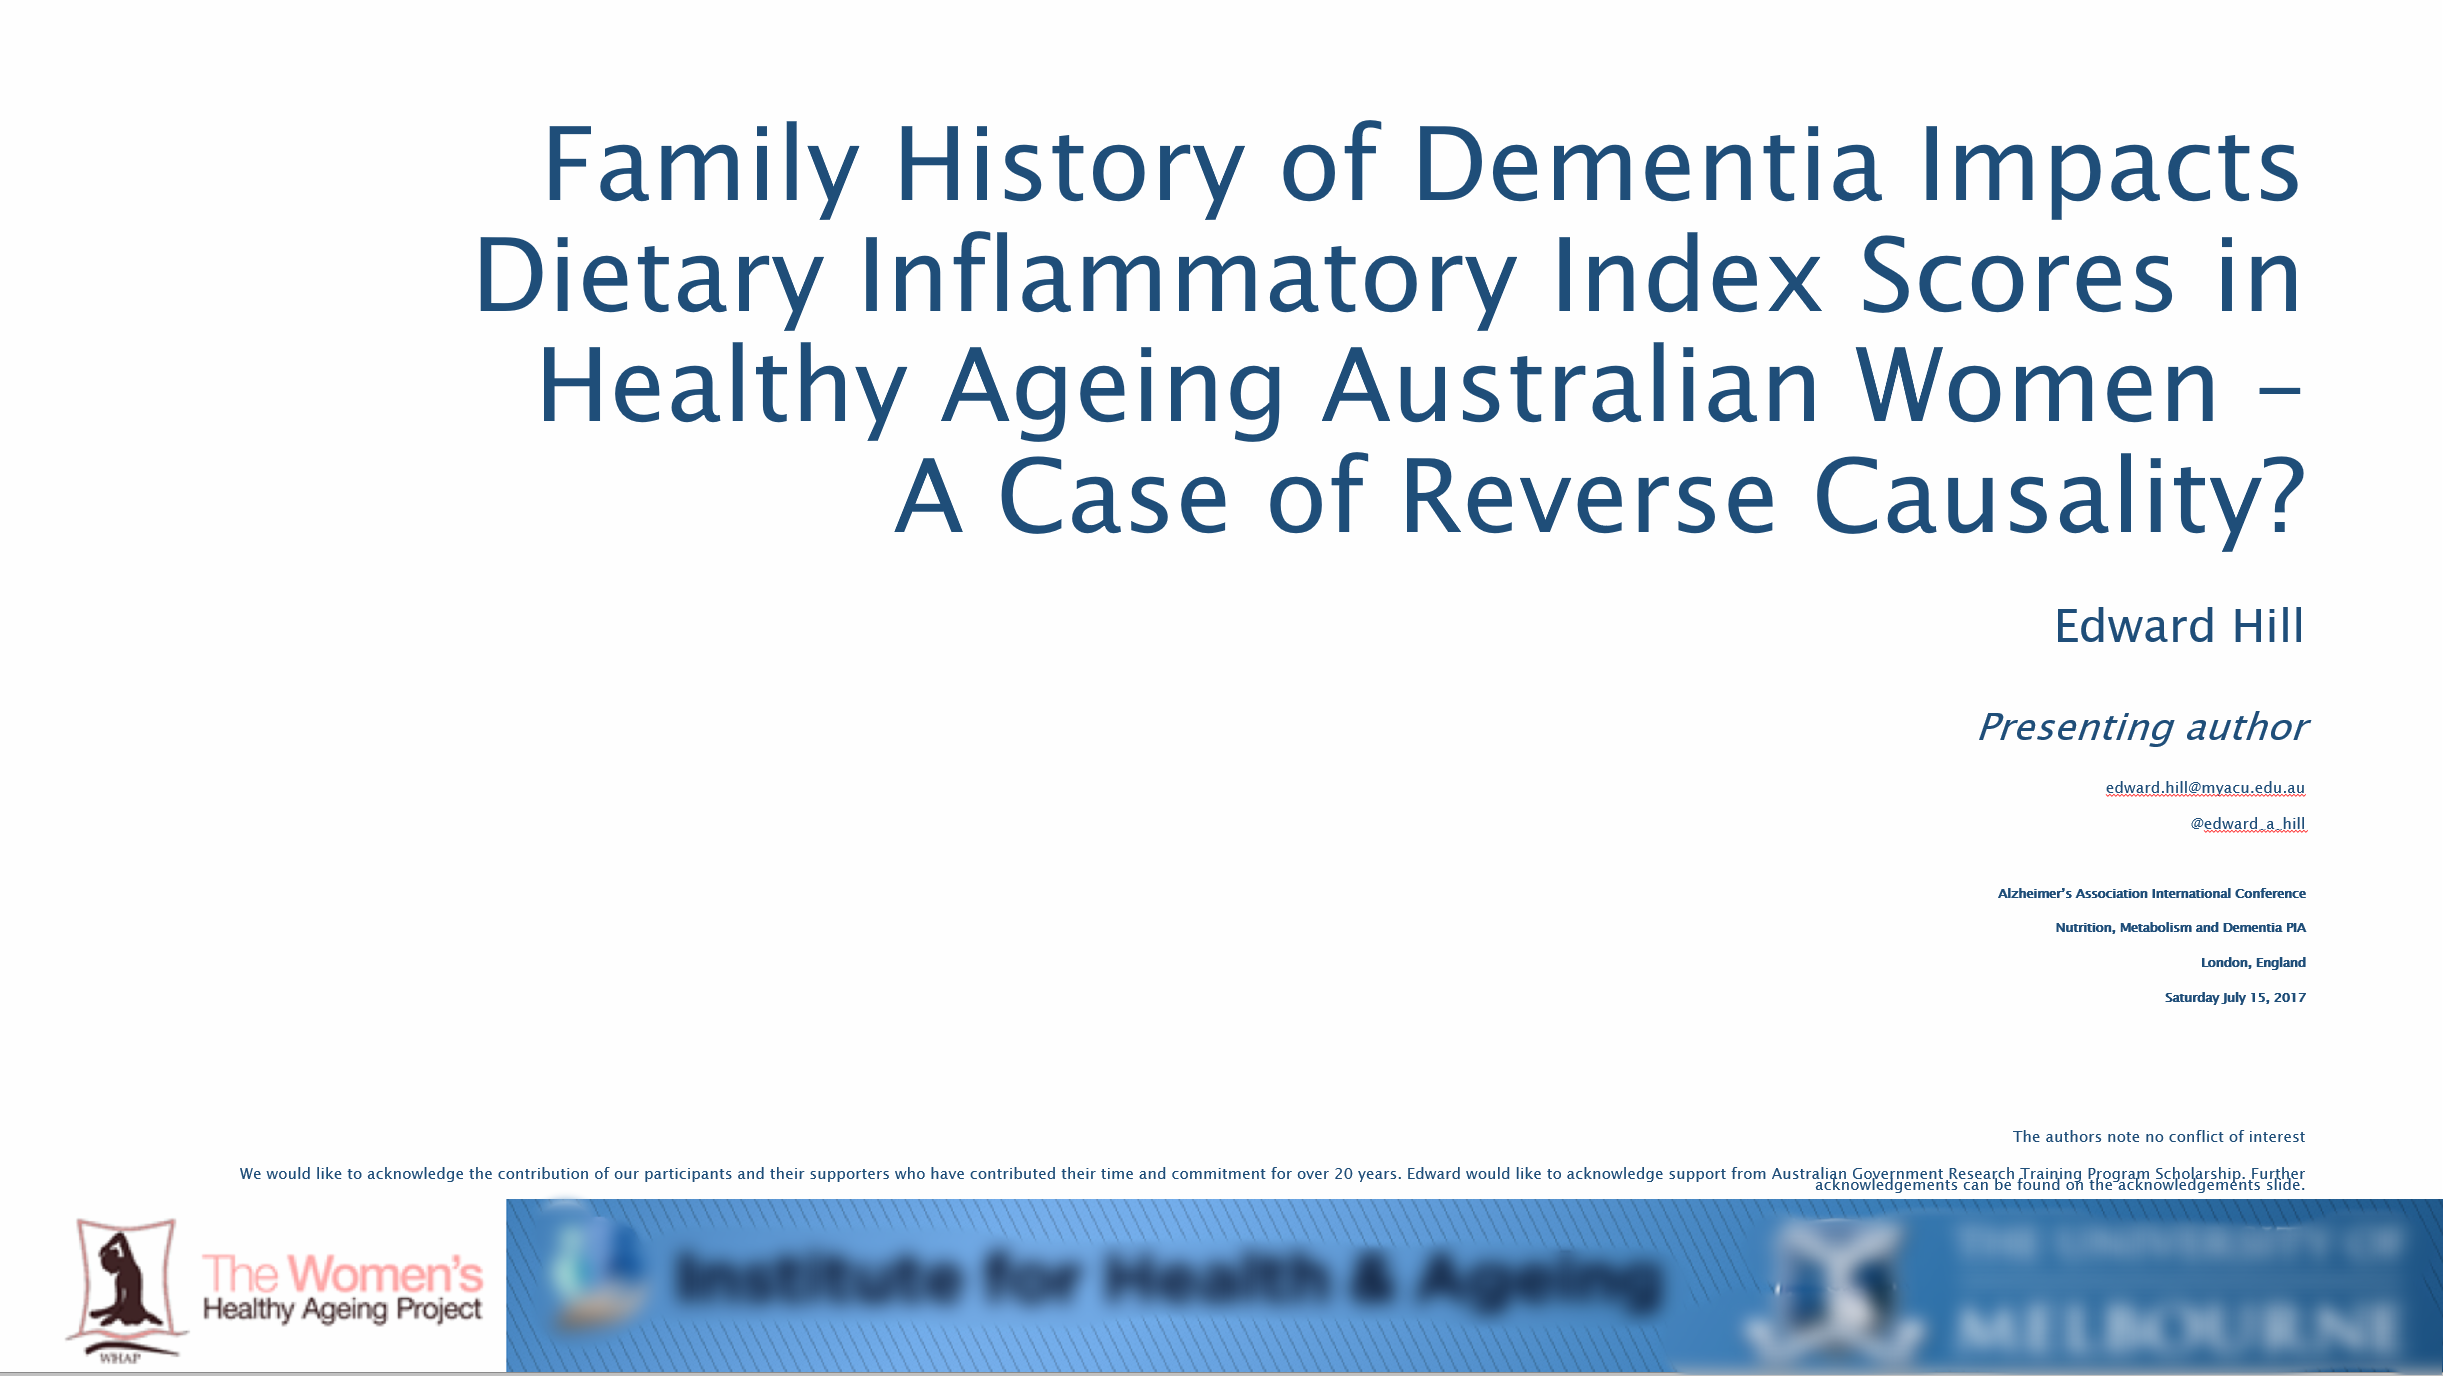 Family history of dementia impacts dietary inflammatory index scores in healthy ageing Australian women – a case of reverse causality? - In this paper, we investigated the impact of familial history of Alzheimer's disease/dementia on dietary inflammatory index scores. To our knowledge, no study has investigated the impact of familial dementia on nutritional patterns. This study found clear evidence for the alteration of nutritional profiles based on familial history after adjusting for confounders. In nutritional research, there is a predilection for dietary choices impacting cognitive decline. These results suggest that an individual's familial propensity for cognitive decline may be enacting an impact on their dietary choices, irrespective of their APOE-ε4 status.Citation: Hill, E., et al. (2017).Family history of dementia impacts dietary inflammatory index scores in healthy ageing Australian women – a case of reverse causality?Paper presented at Alzheimer's Association International Conference, London, England, 16-20 July.